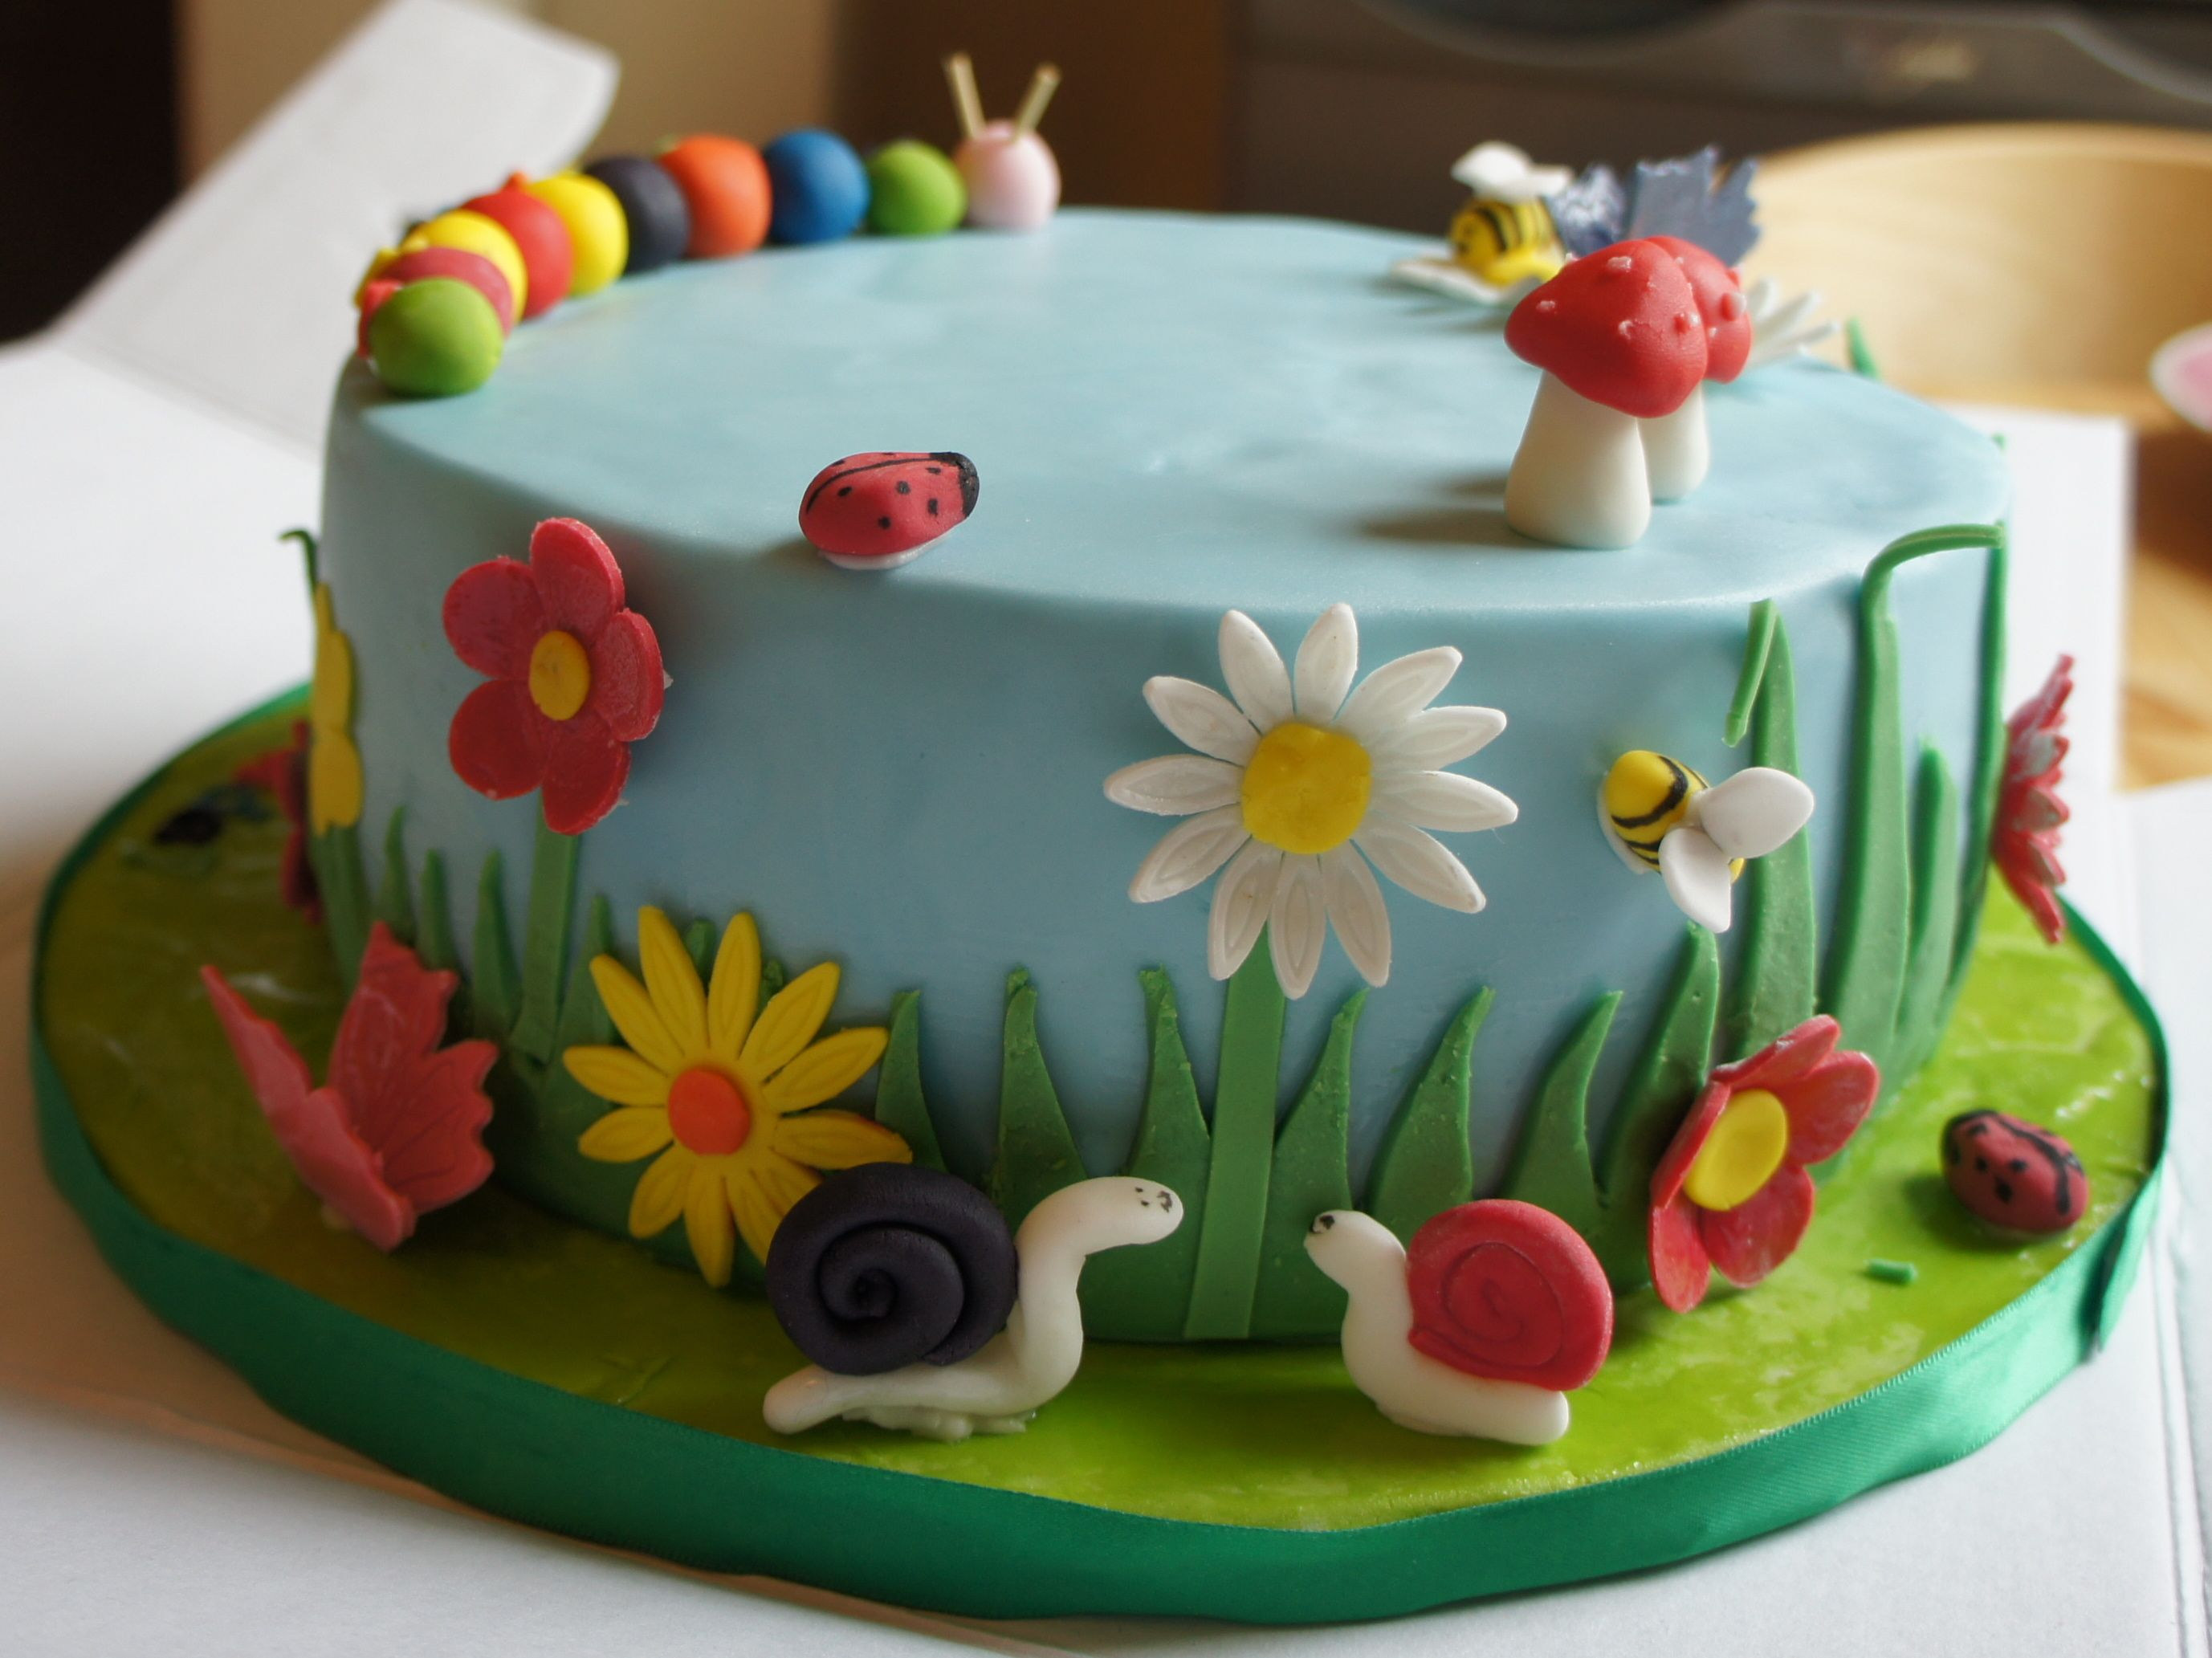 Garden Decoration For Cake : Cool cake idea for a spring cake, makes me want to learn ...